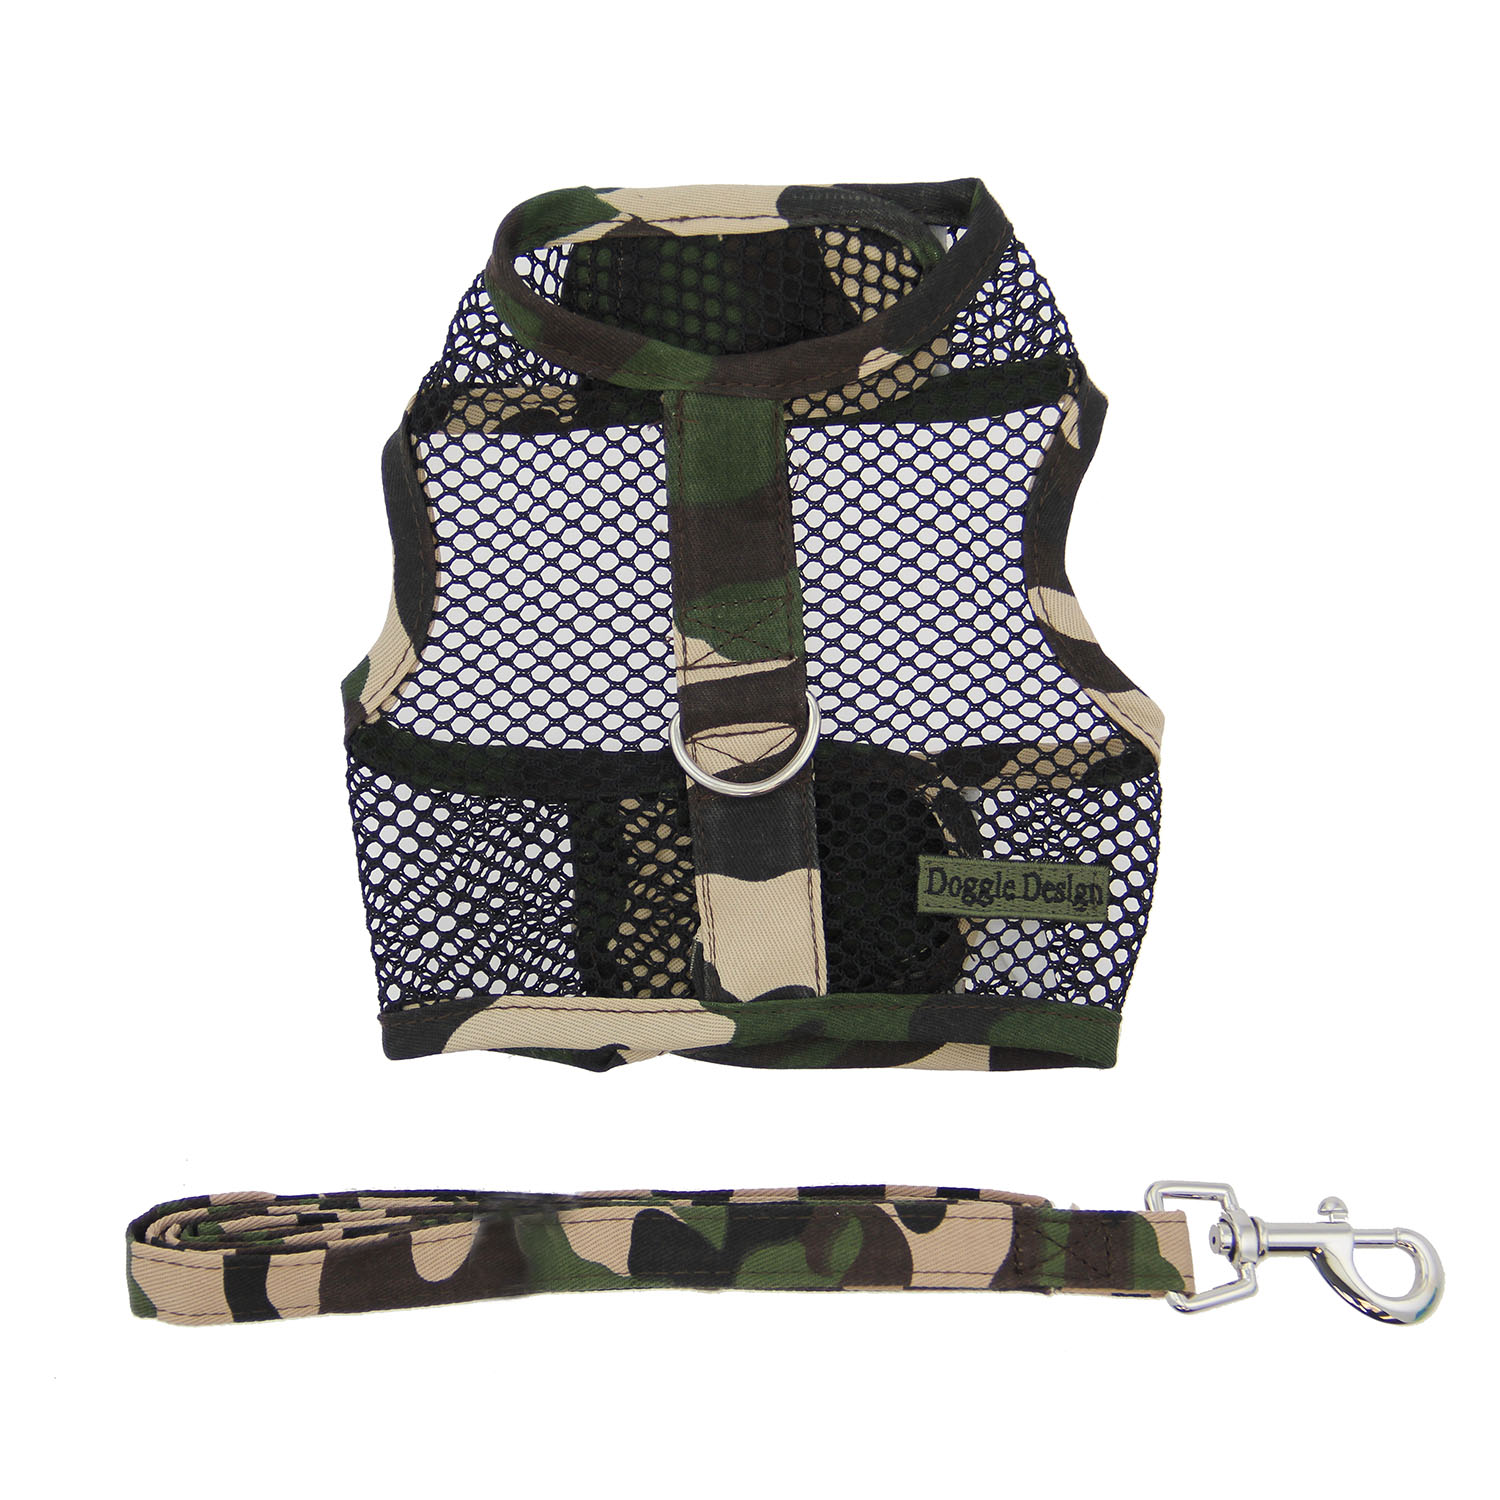 Doggie Design Cool Mesh Dog Harness with Matching Leash, Camouflage, Small